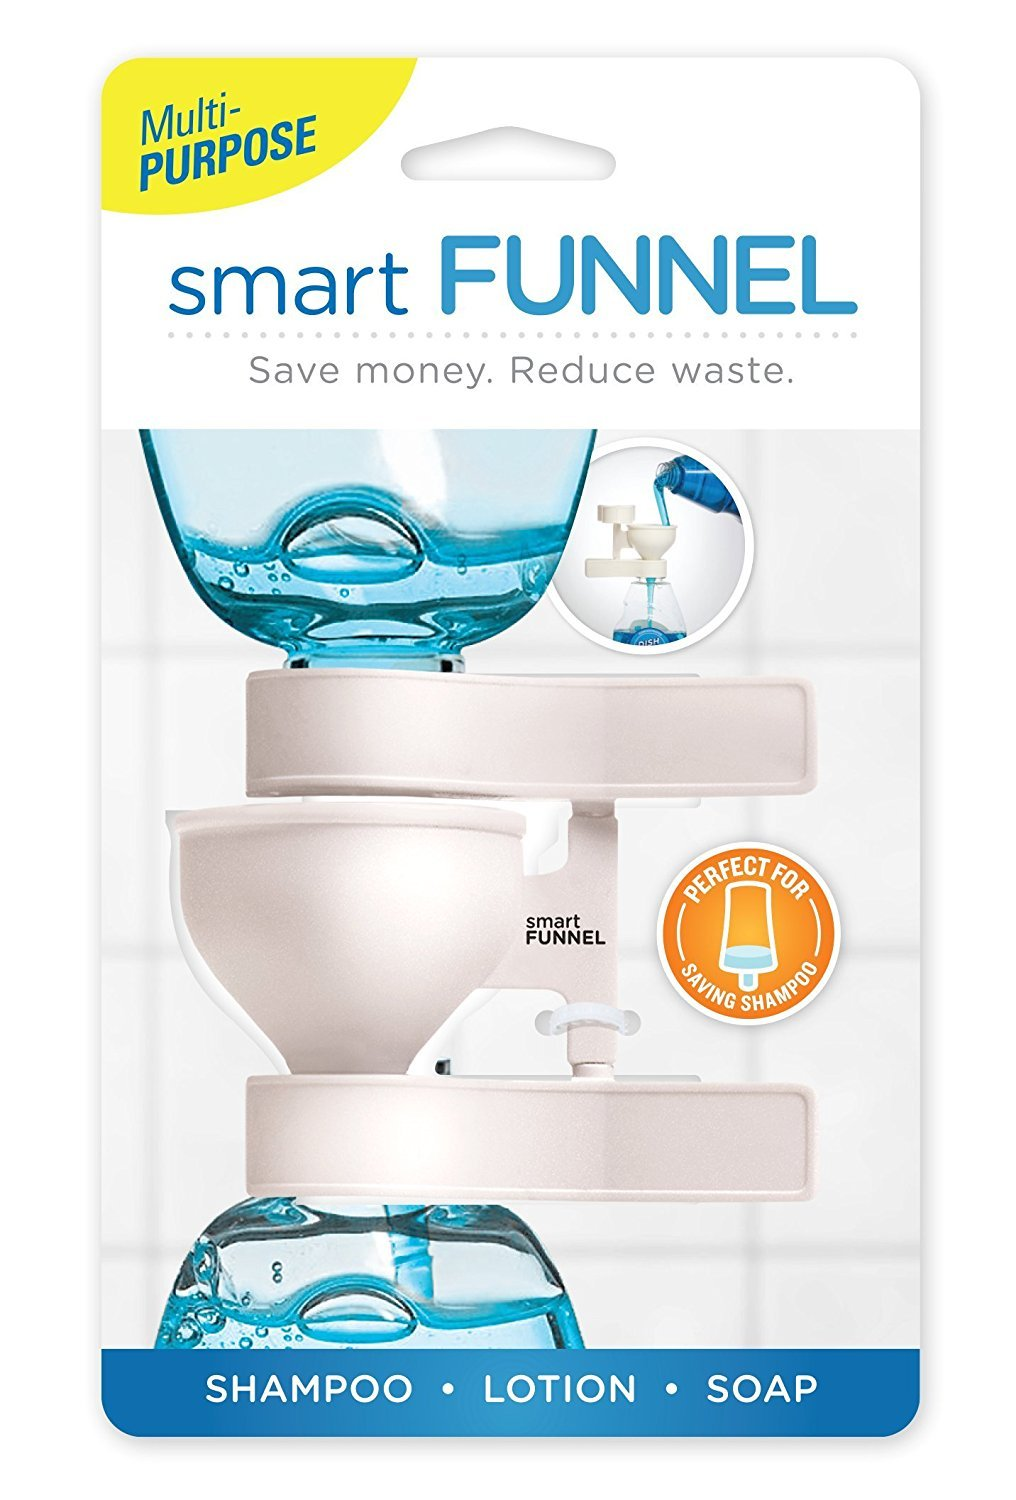 Dripit No Waste Funnel Drip-It Funnel CUMBERLAND CONCEPT INC 201